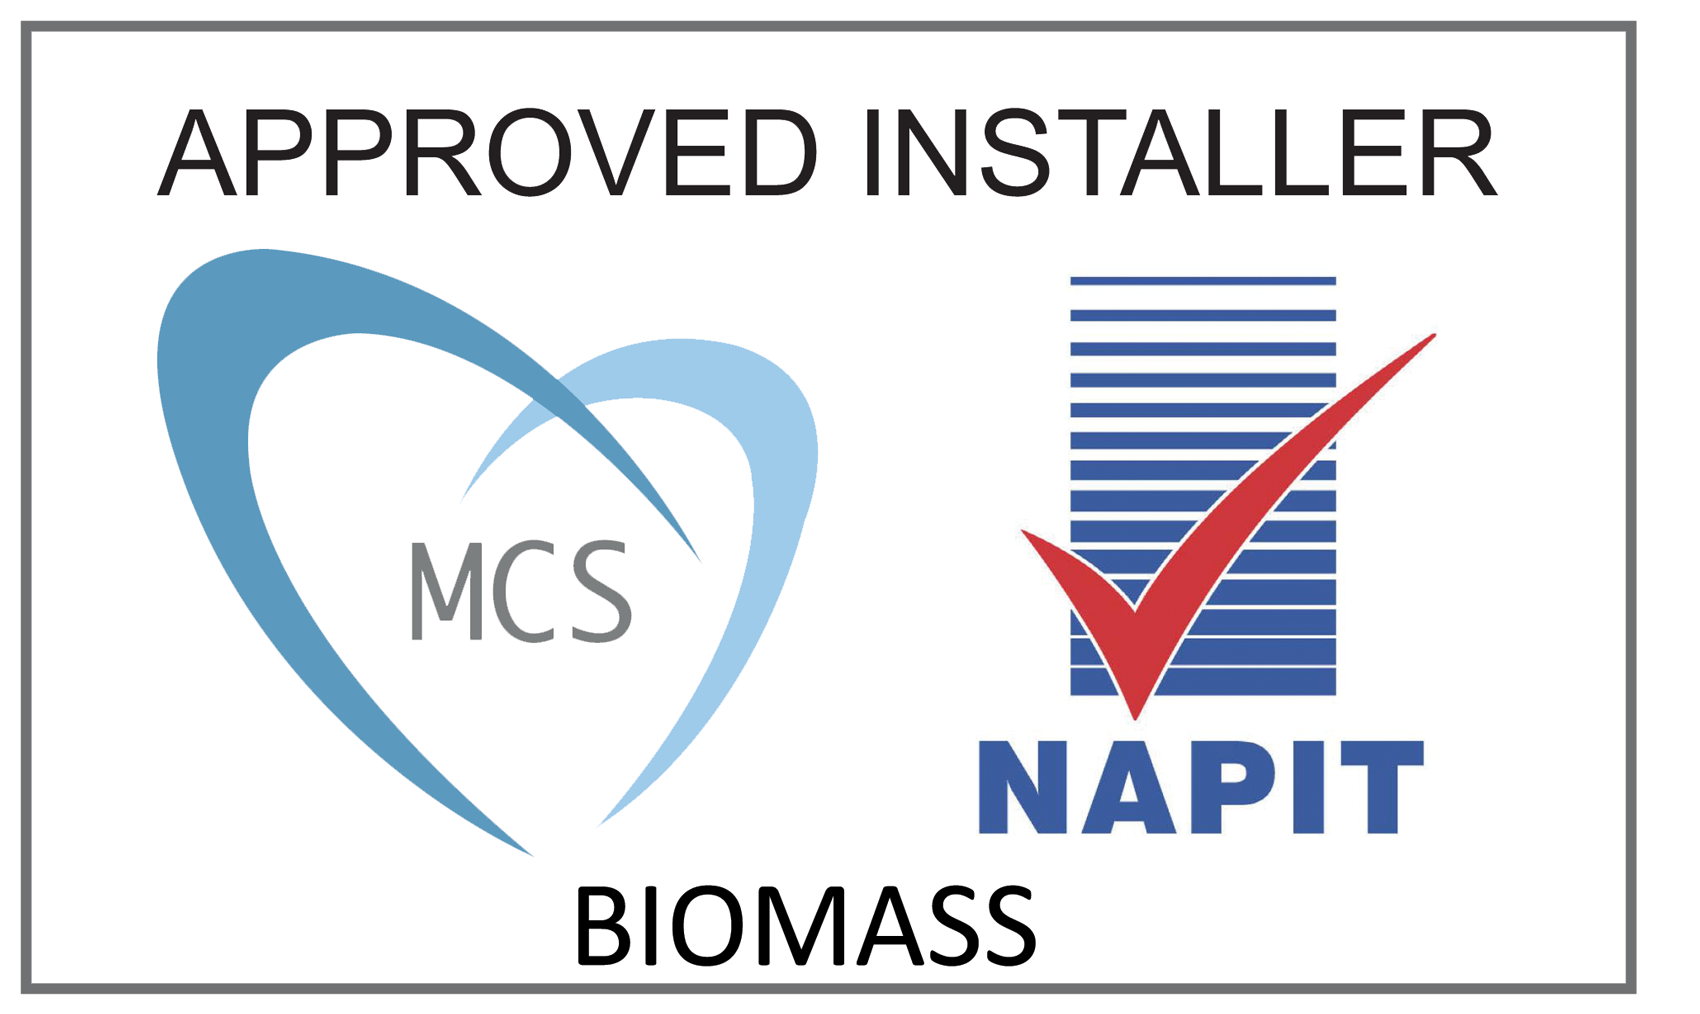 MCS approved installer logo